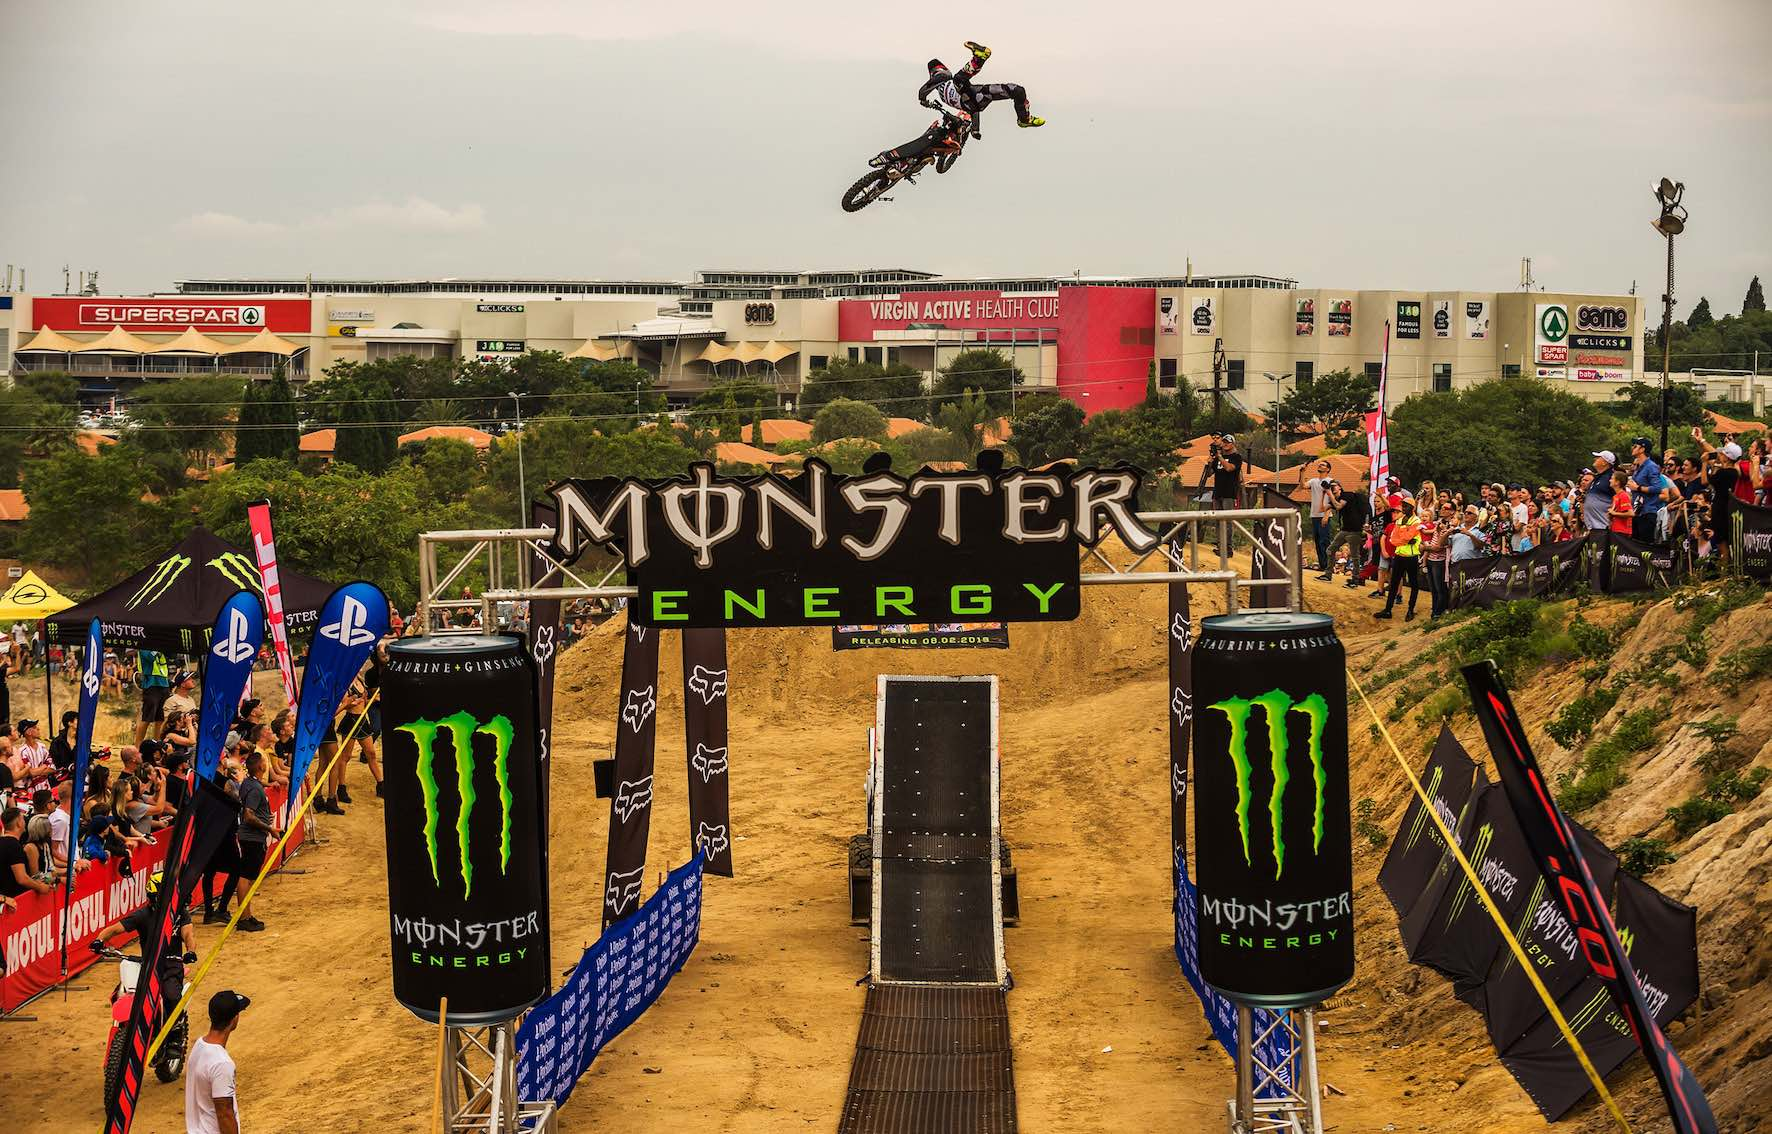 Results from the FMX contest at King of the Whip event